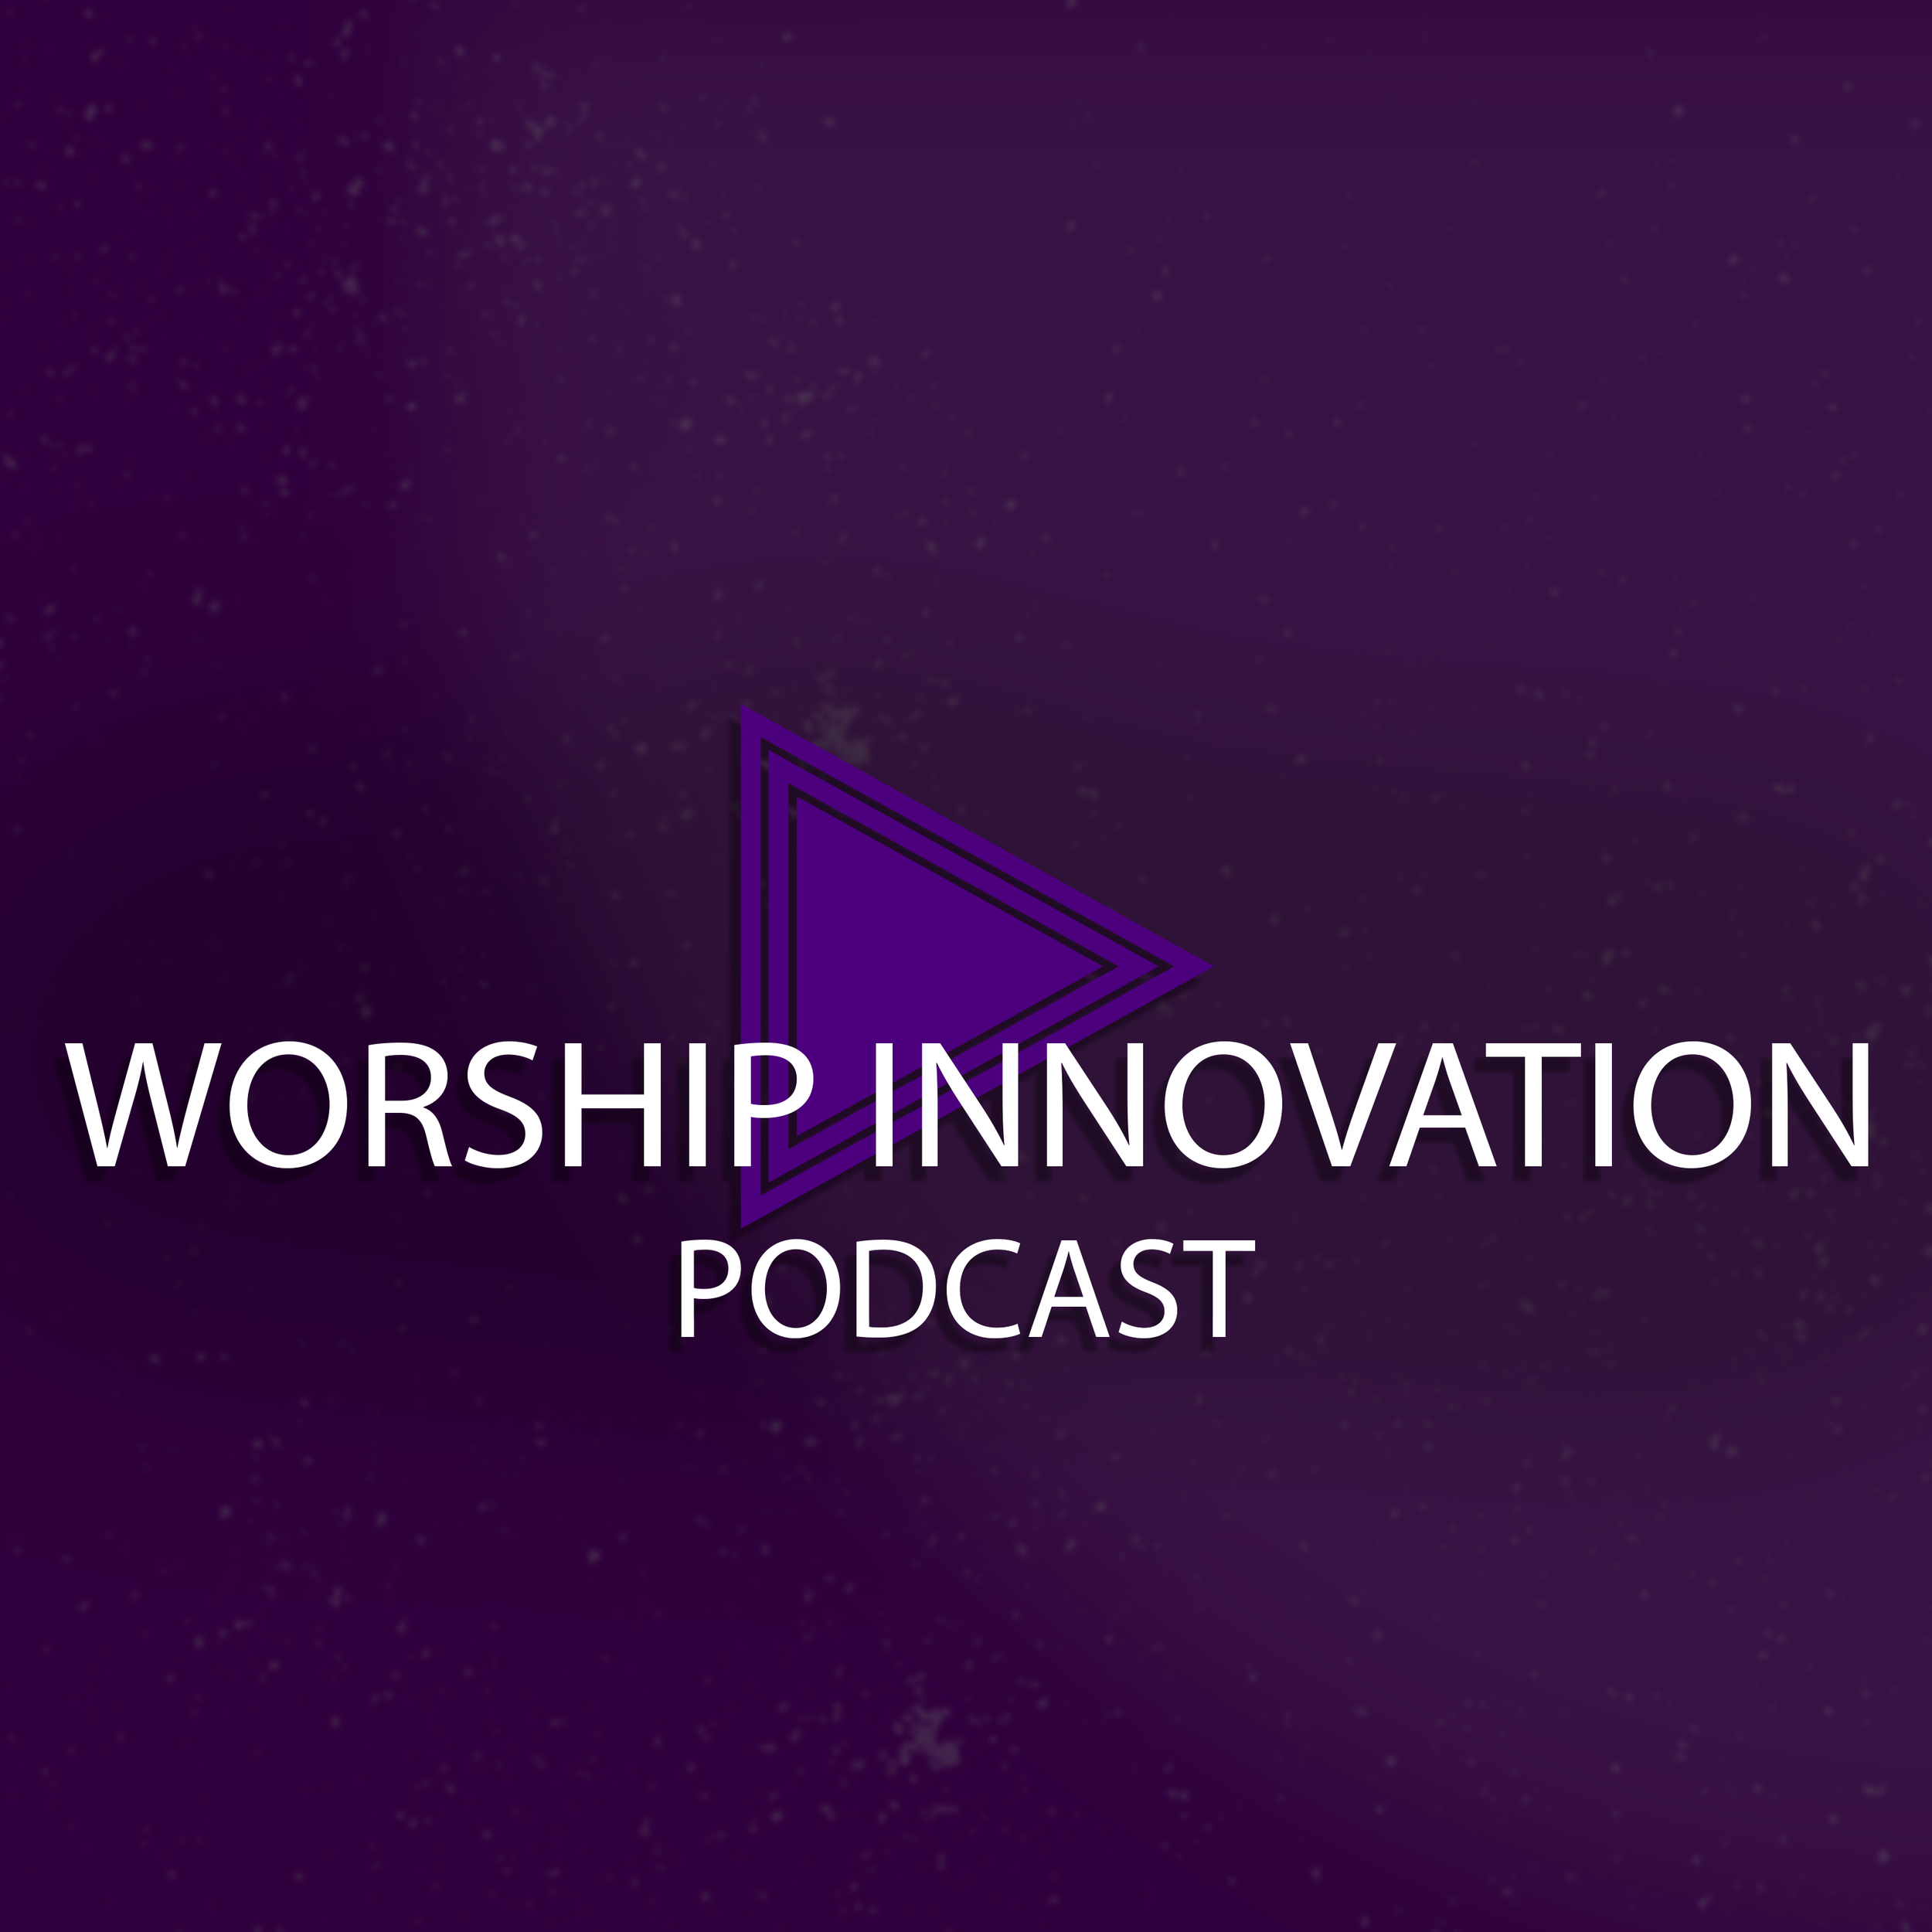 Who We Are - In This Episode Josh and Tyler discuss the heart and vision of Worship Innovation as a whole.